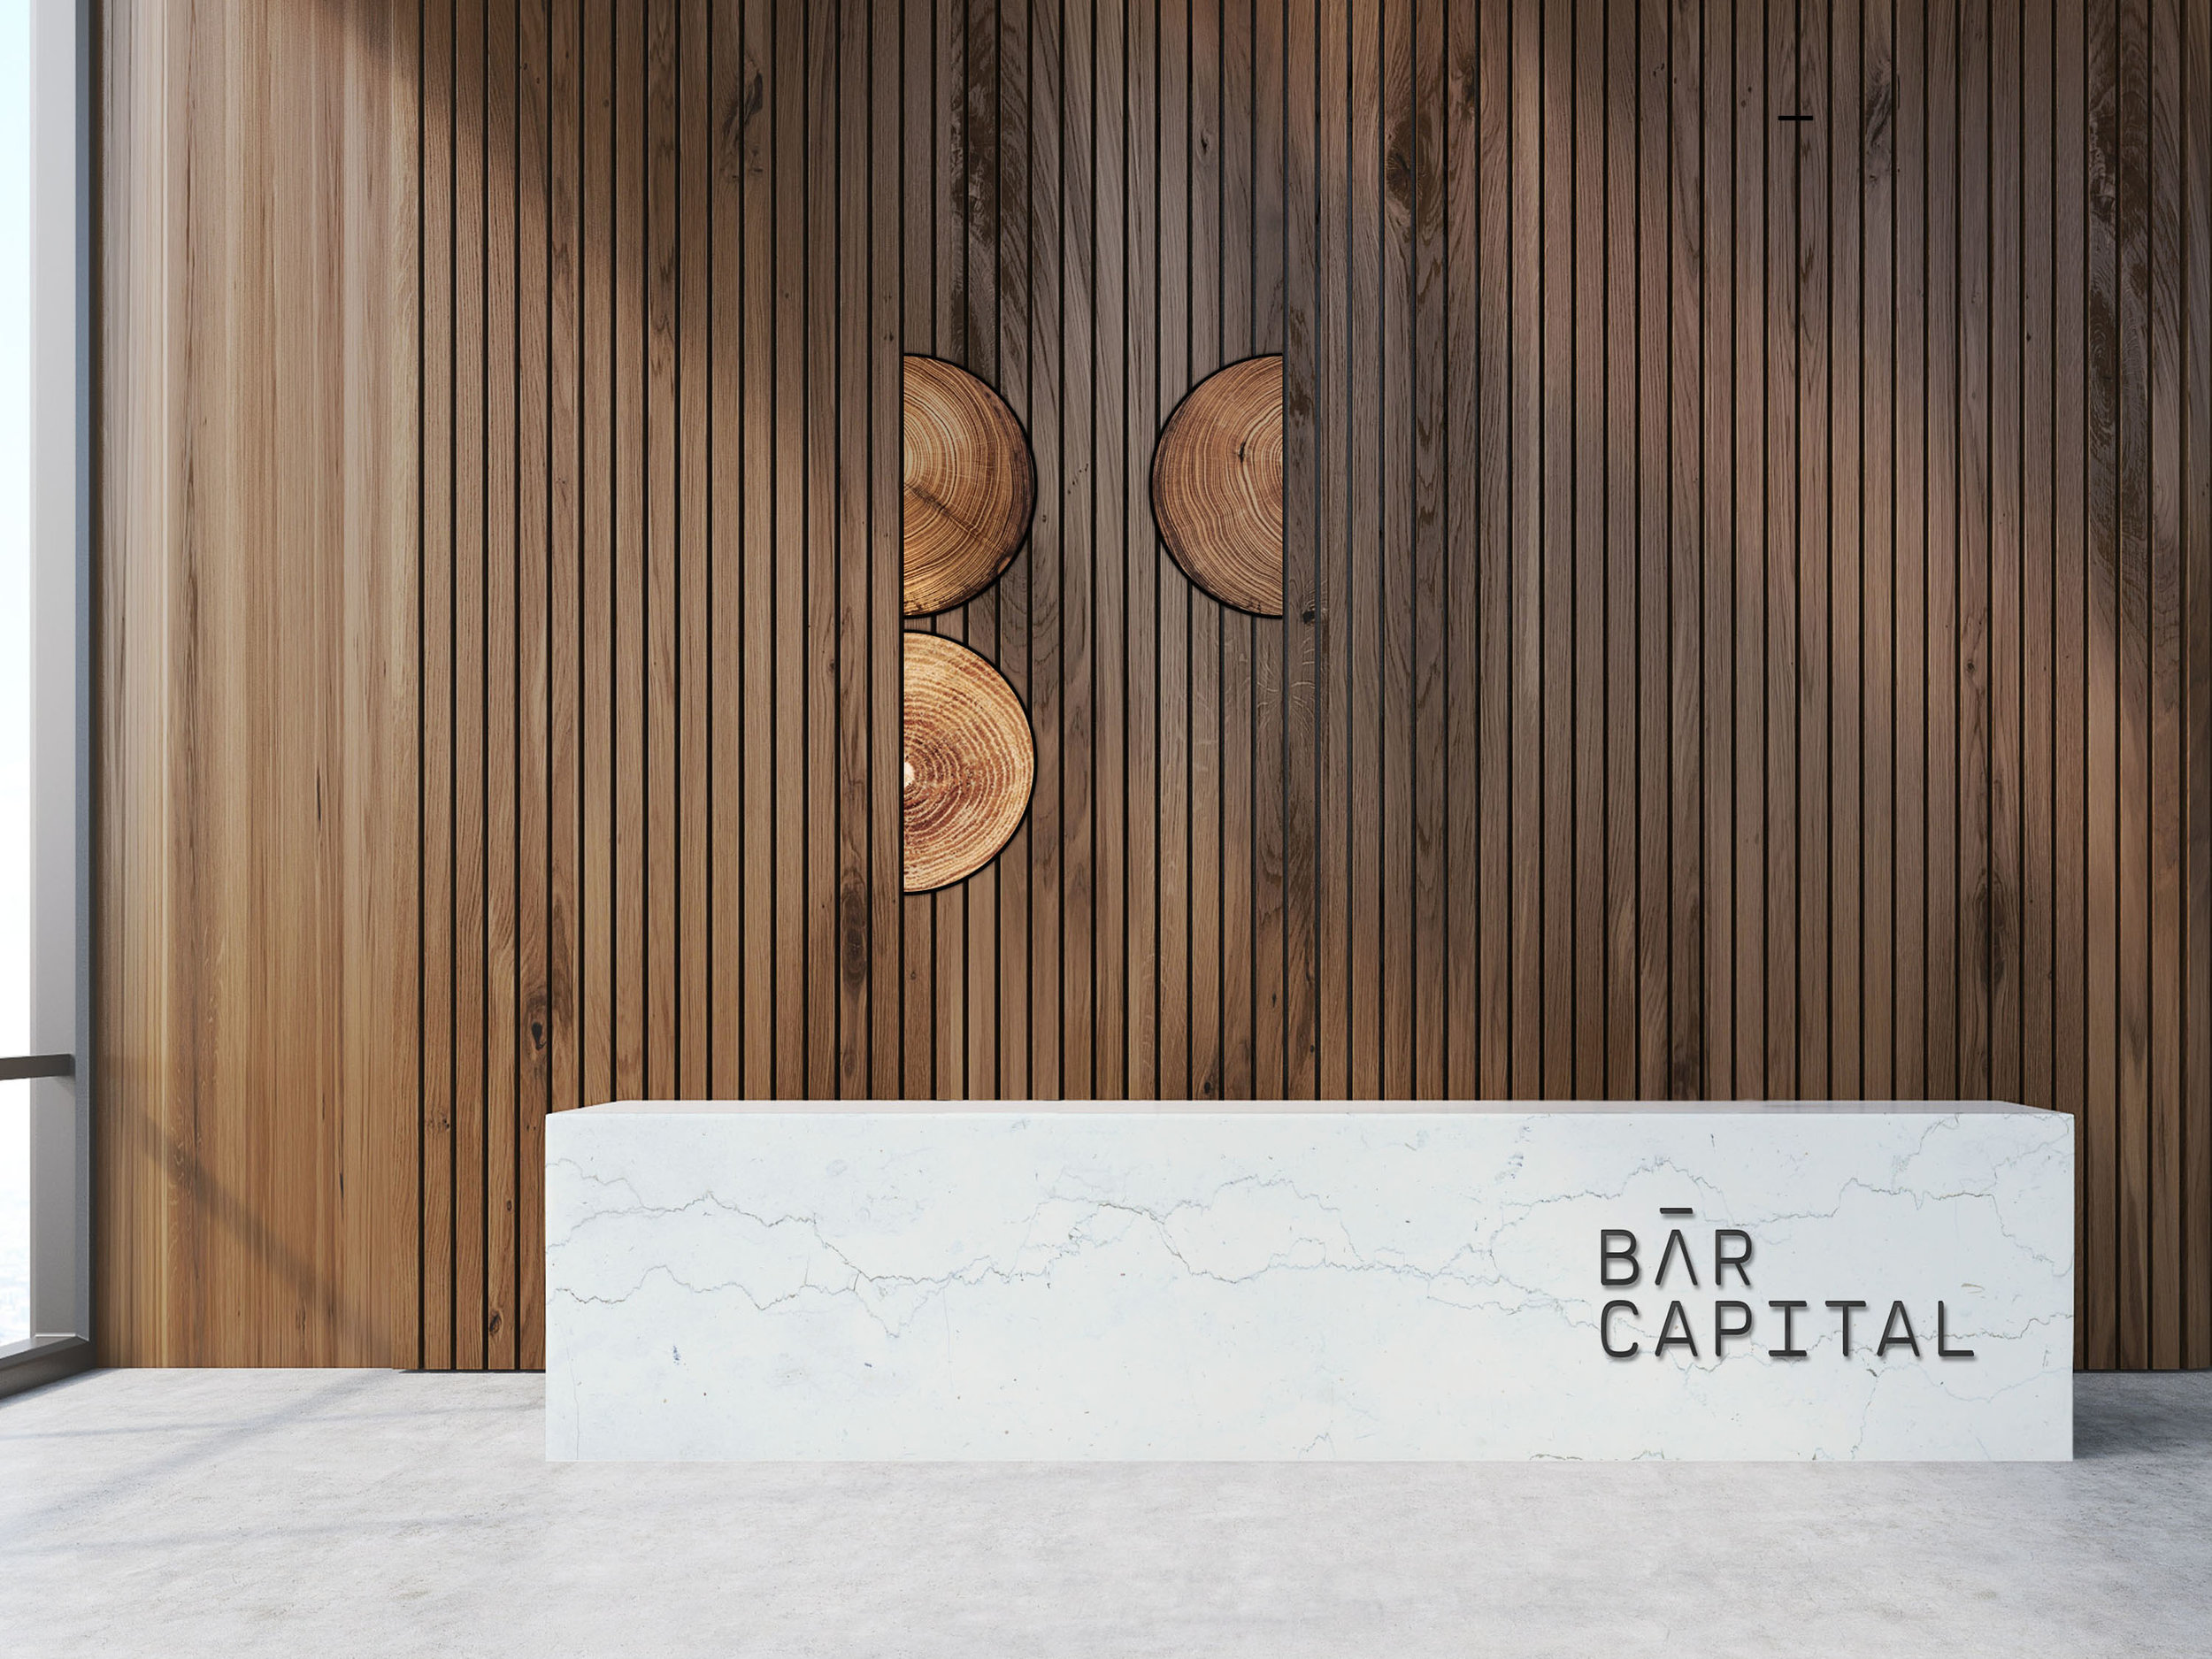 - —We developed concepts for Bar Capital's eventual lobby. The orderly wooden, shiplap wall is broken up by the logo constructed with cross section cuts from a tree stump. It continues the core tenet of celebrating natural materials as well as championing imperfections and the unpredictability of nature.